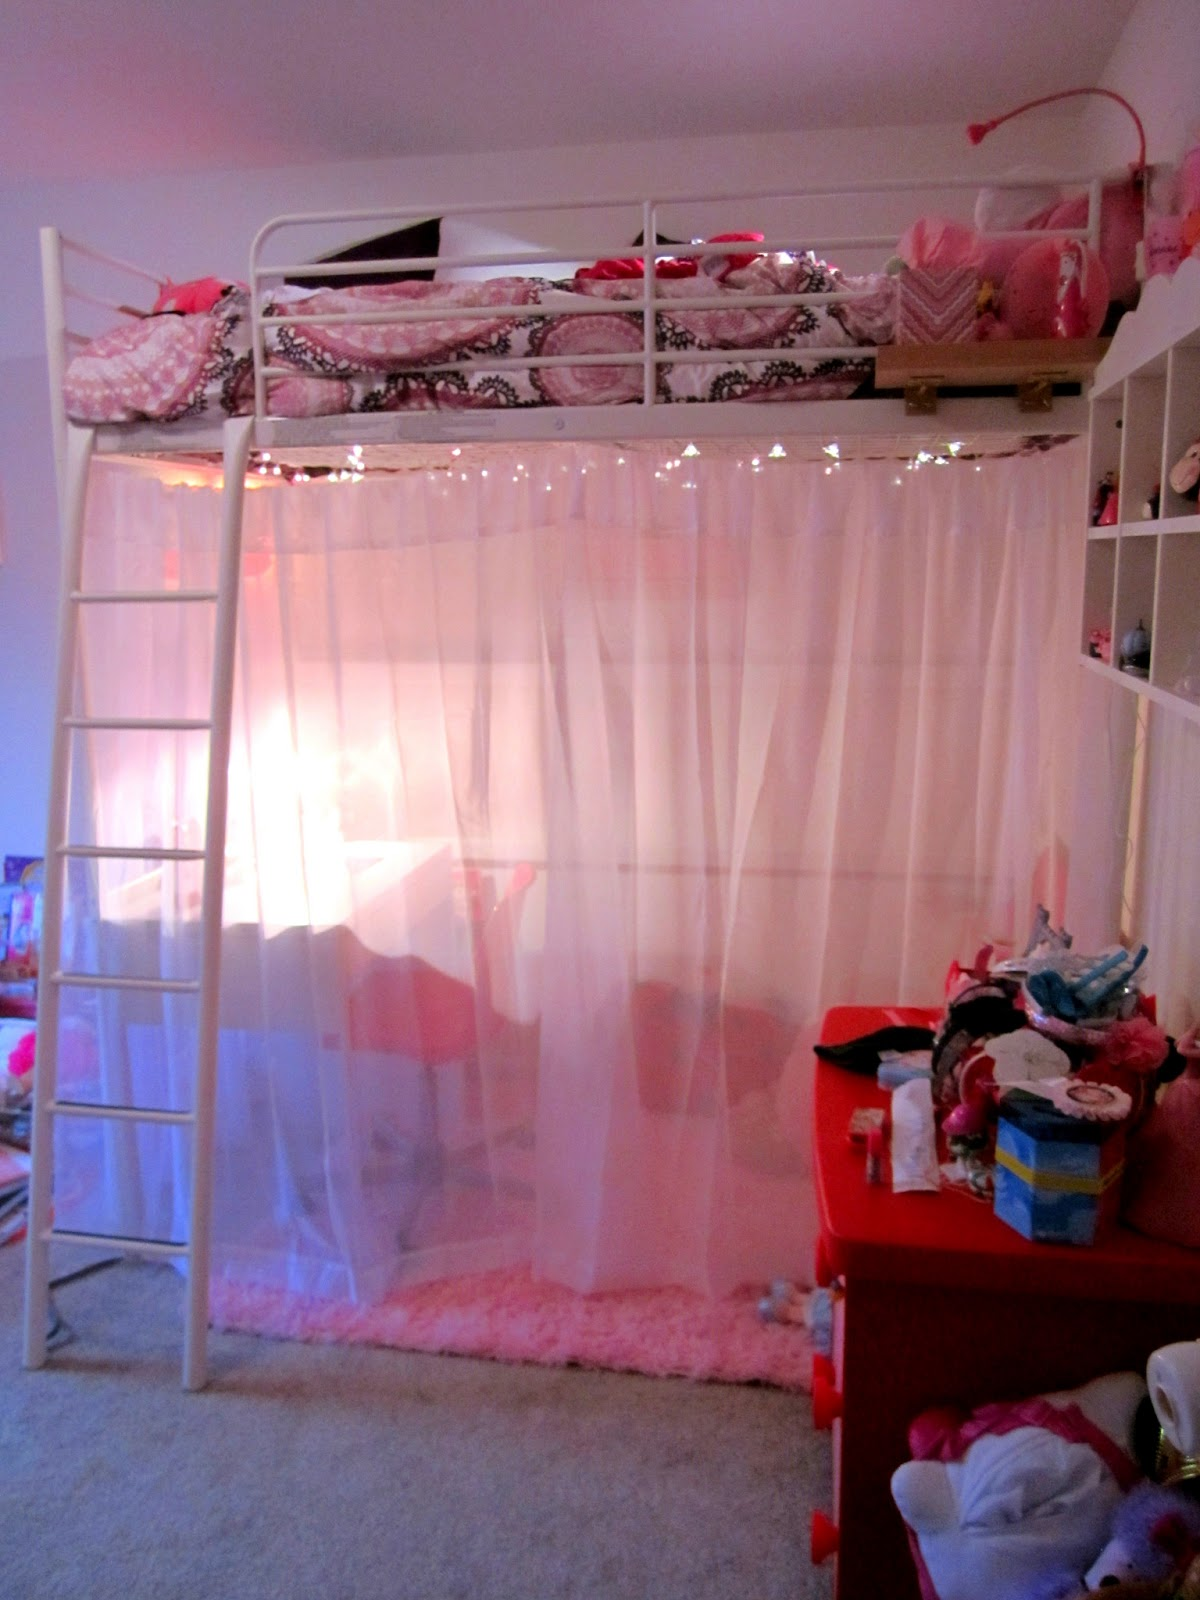 Room Makeover And A Box Bed: The Good Housewife Project: Abby's Room Makeover